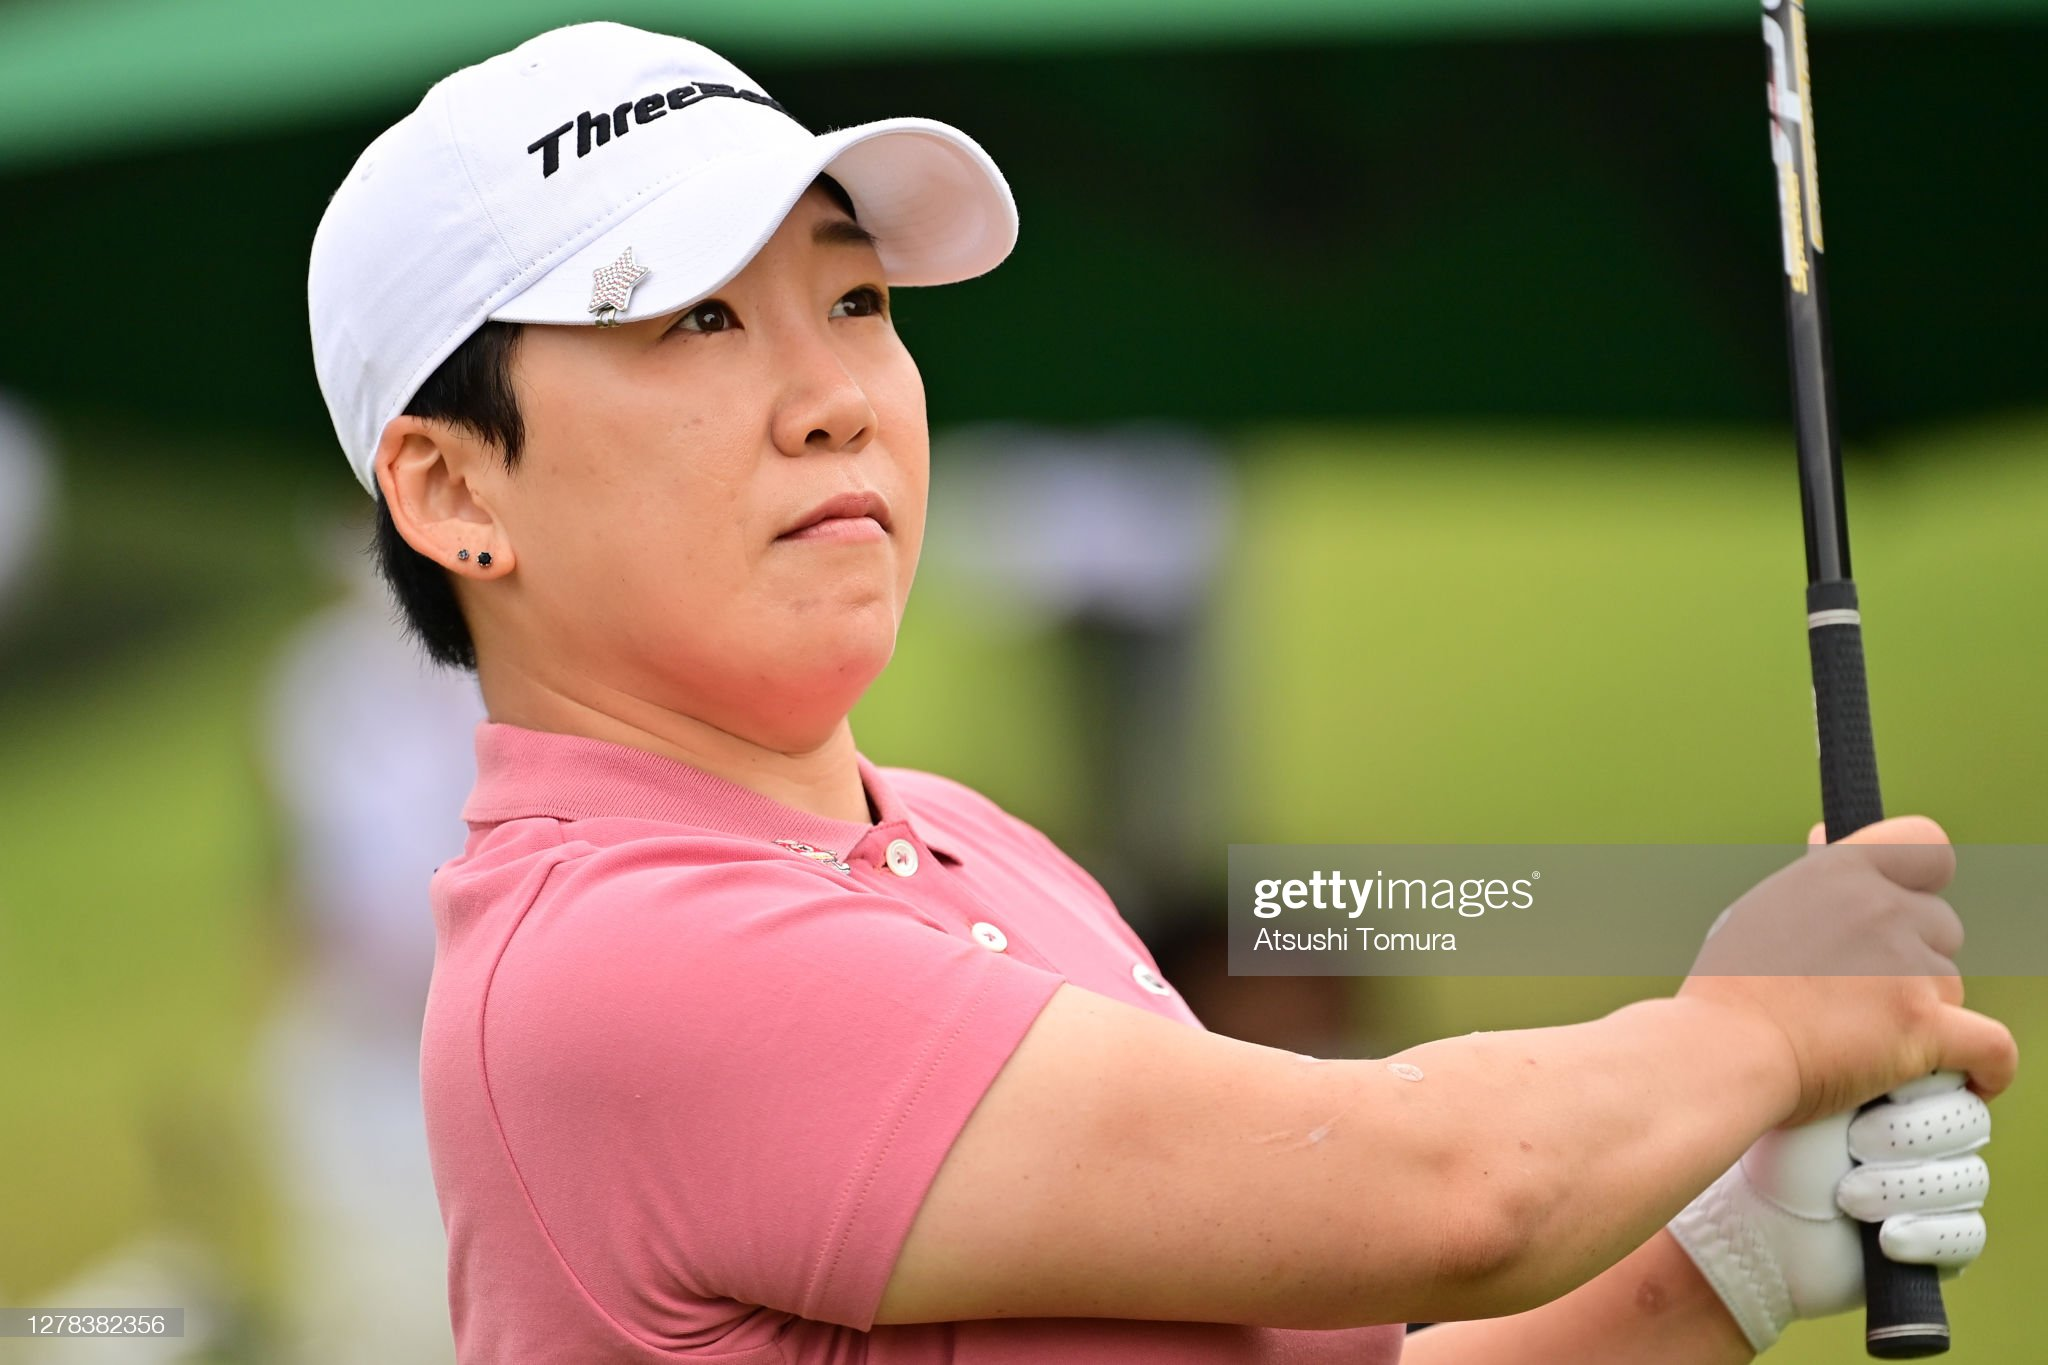 https://media.gettyimages.com/photos/jiyai-shin-of-south-korea-hits-her-tee-shot-on-the-1st-hole-during-picture-id1278382356?s=2048x2048